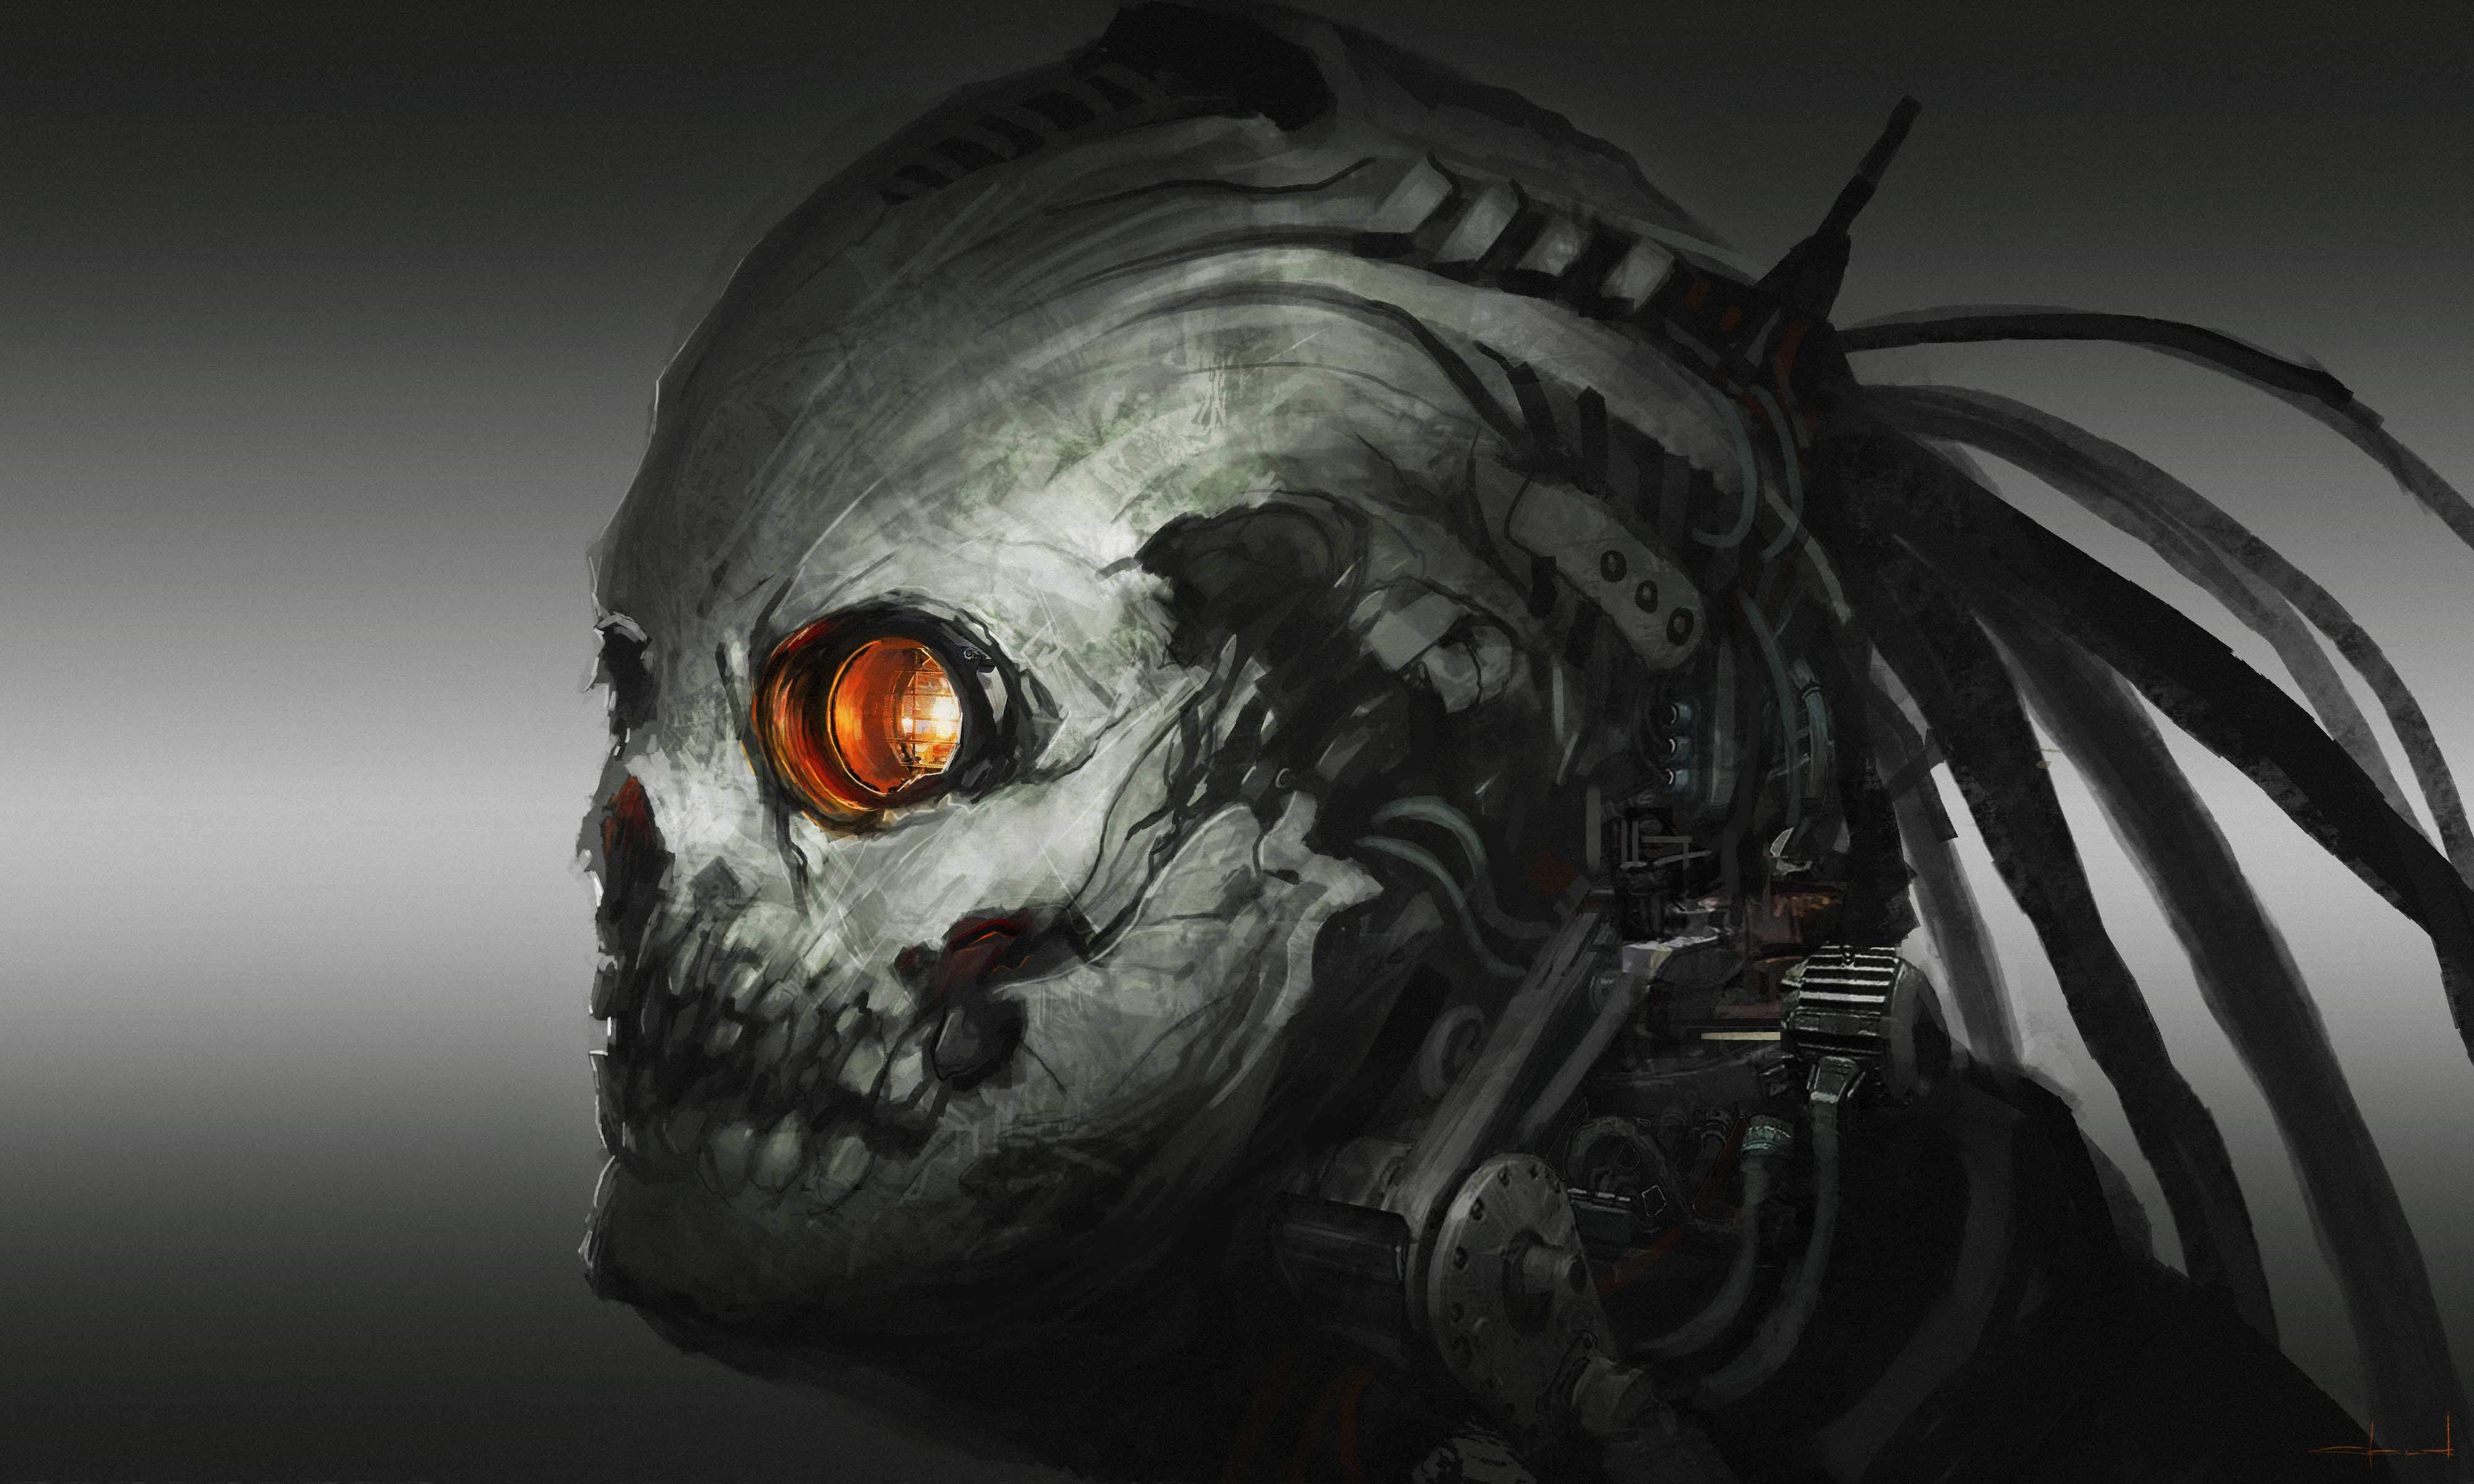 Skull 4k ultra hd wallpaper background image 4000x2400 - Devil skull wallpaper ...